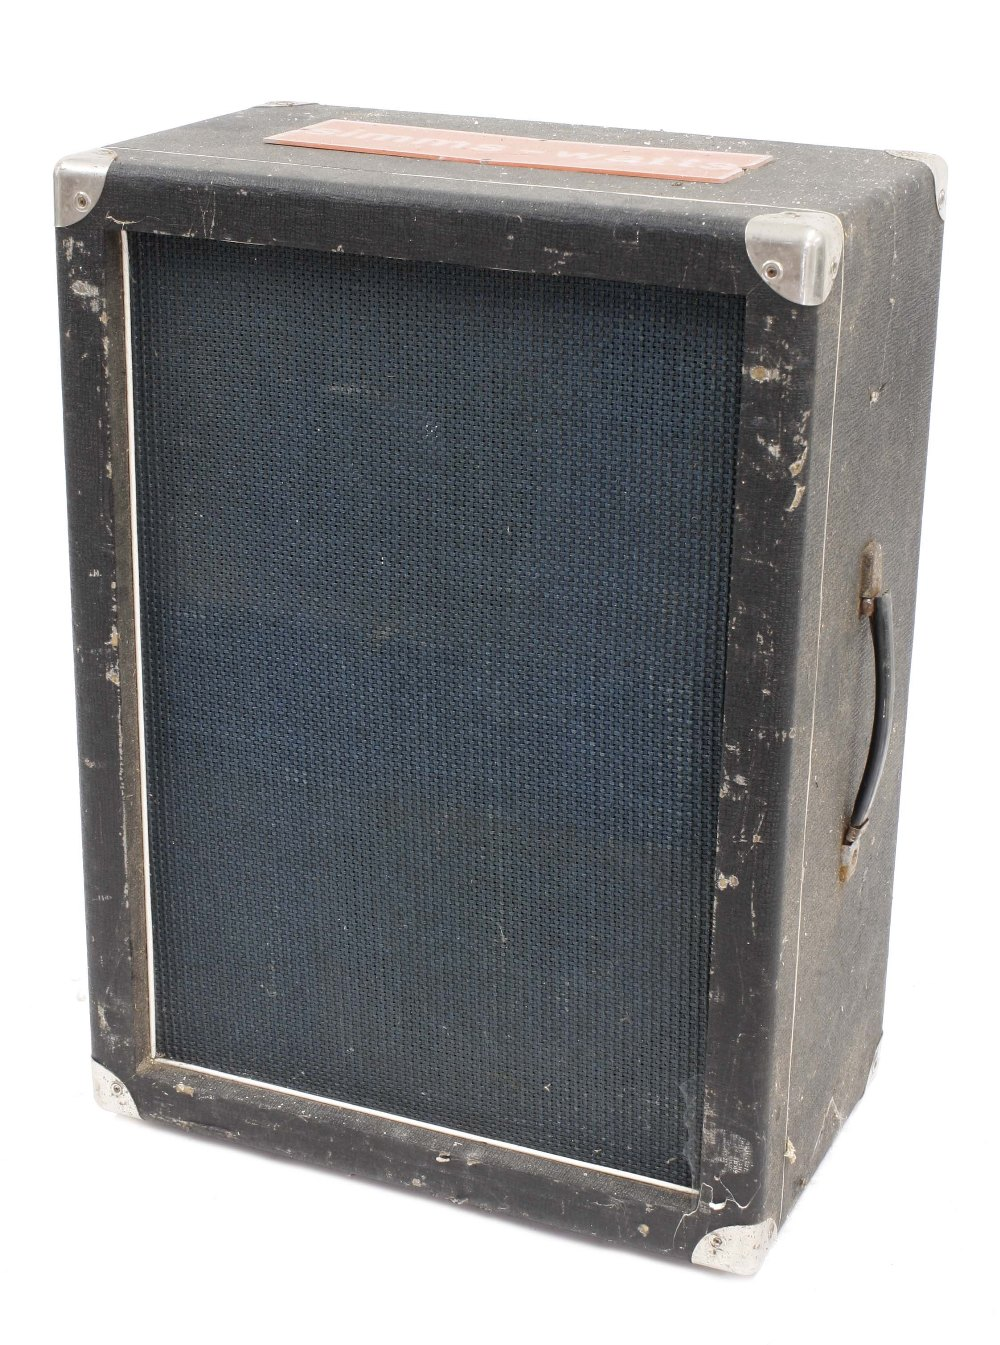 """Simms-Watts 2 x 12 guitar amplifier speaker cabinet, fitted with a Sound Lab and Fane 12"""" speakers"""